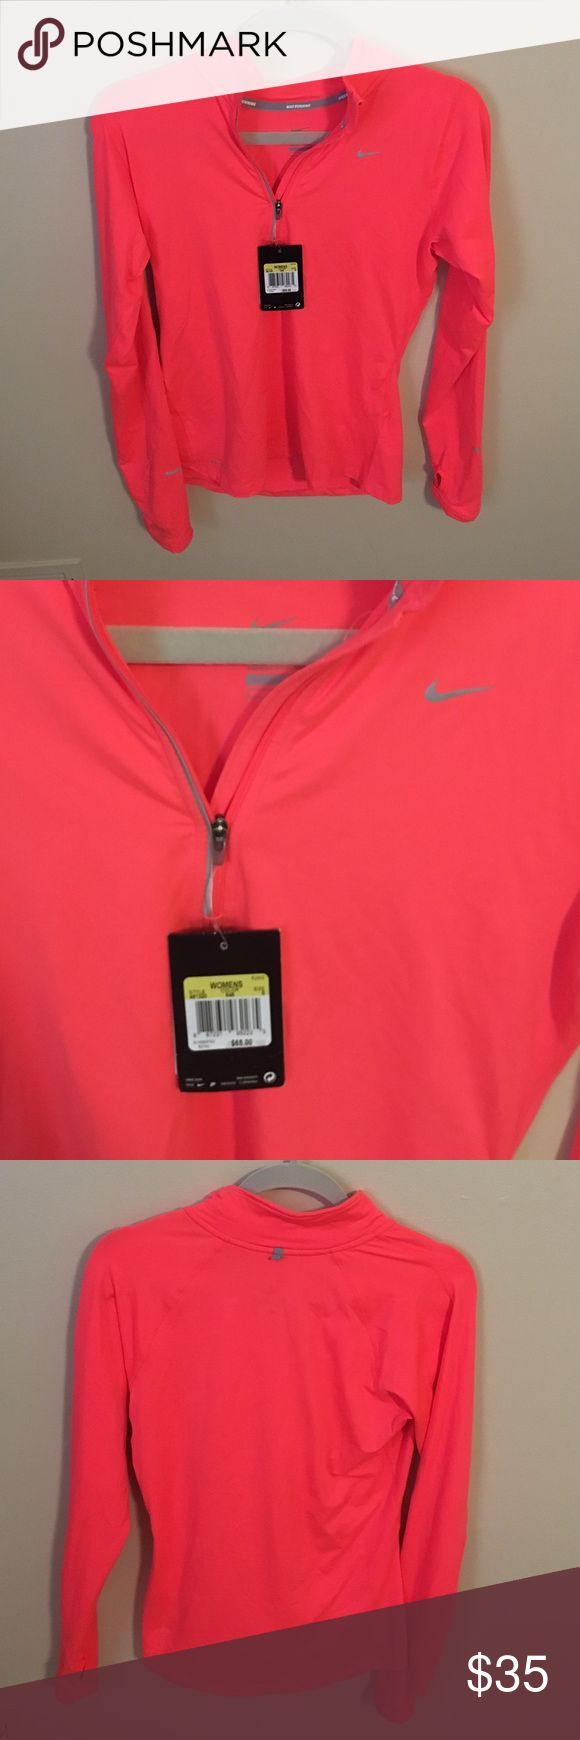 BRAND NEW Coral/Orange/Pink Nike Quarter Zip In perfect condition & never worn, this top is extremely soft and perfect for an athletic look! Nike Tops